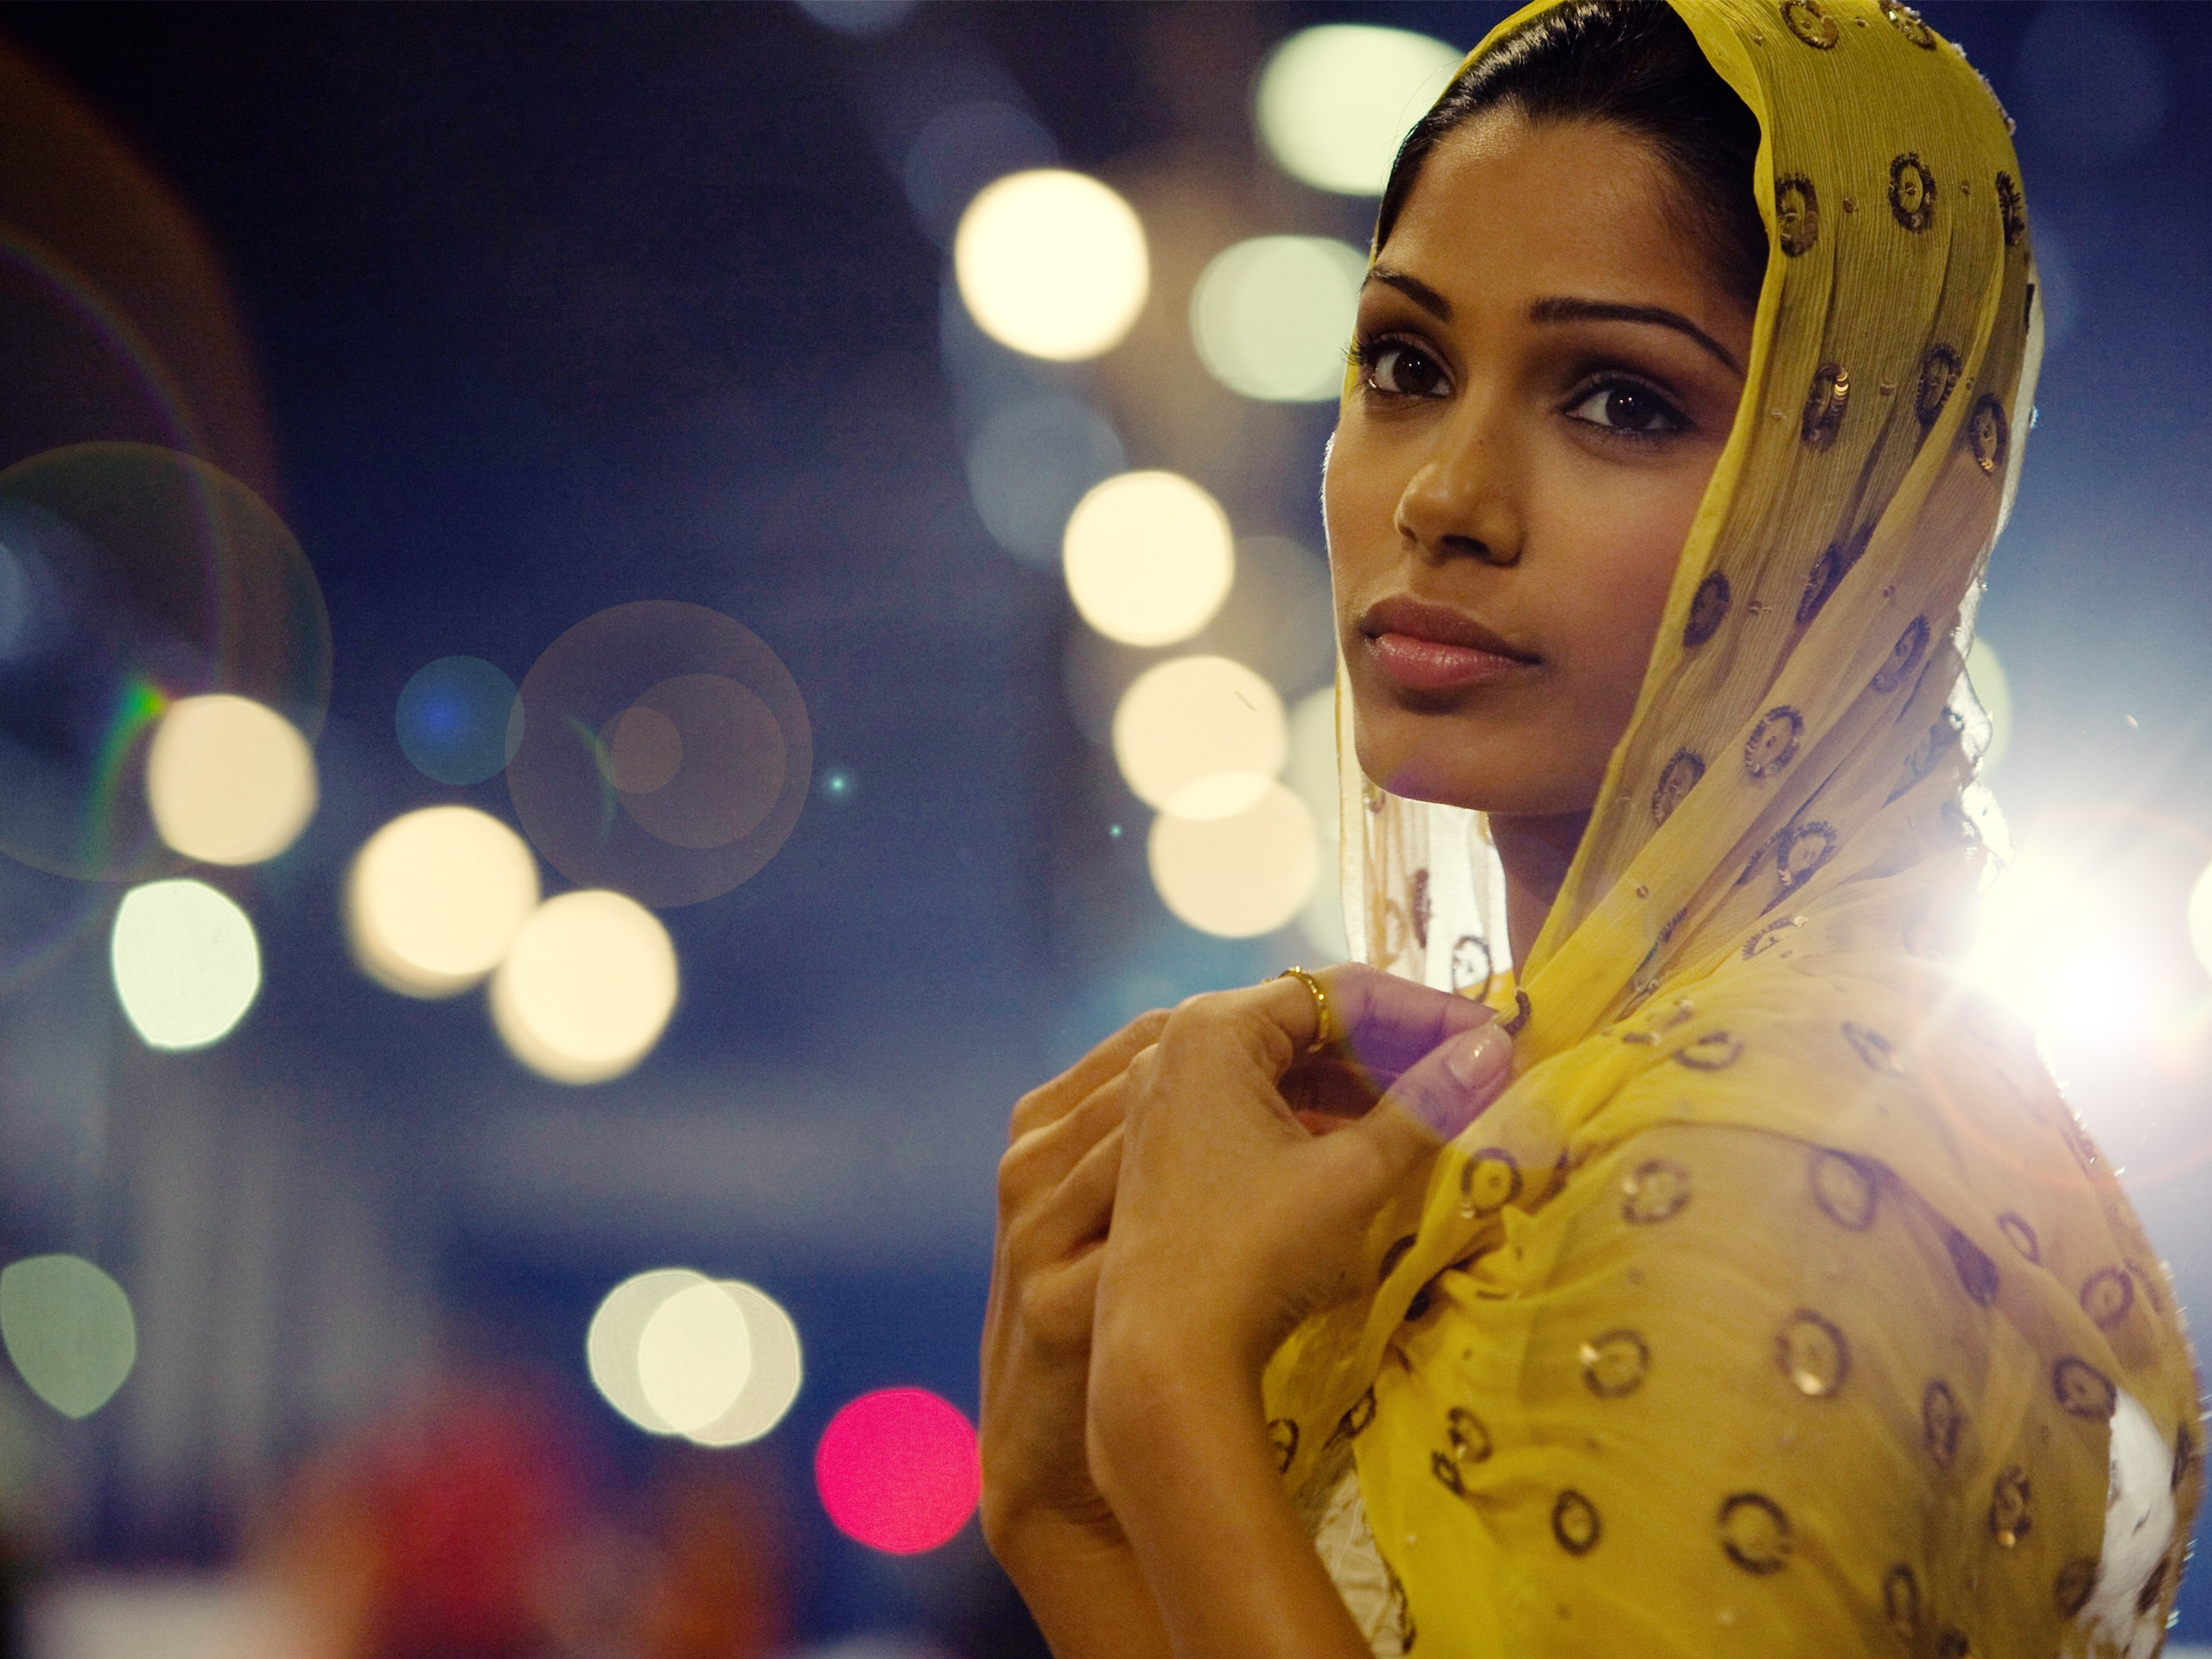 Slumdog millionaire, cult freida pinto latika cultstories india actress cultgallery cult stories cult story photo gallery cinema film movie oscar boyle